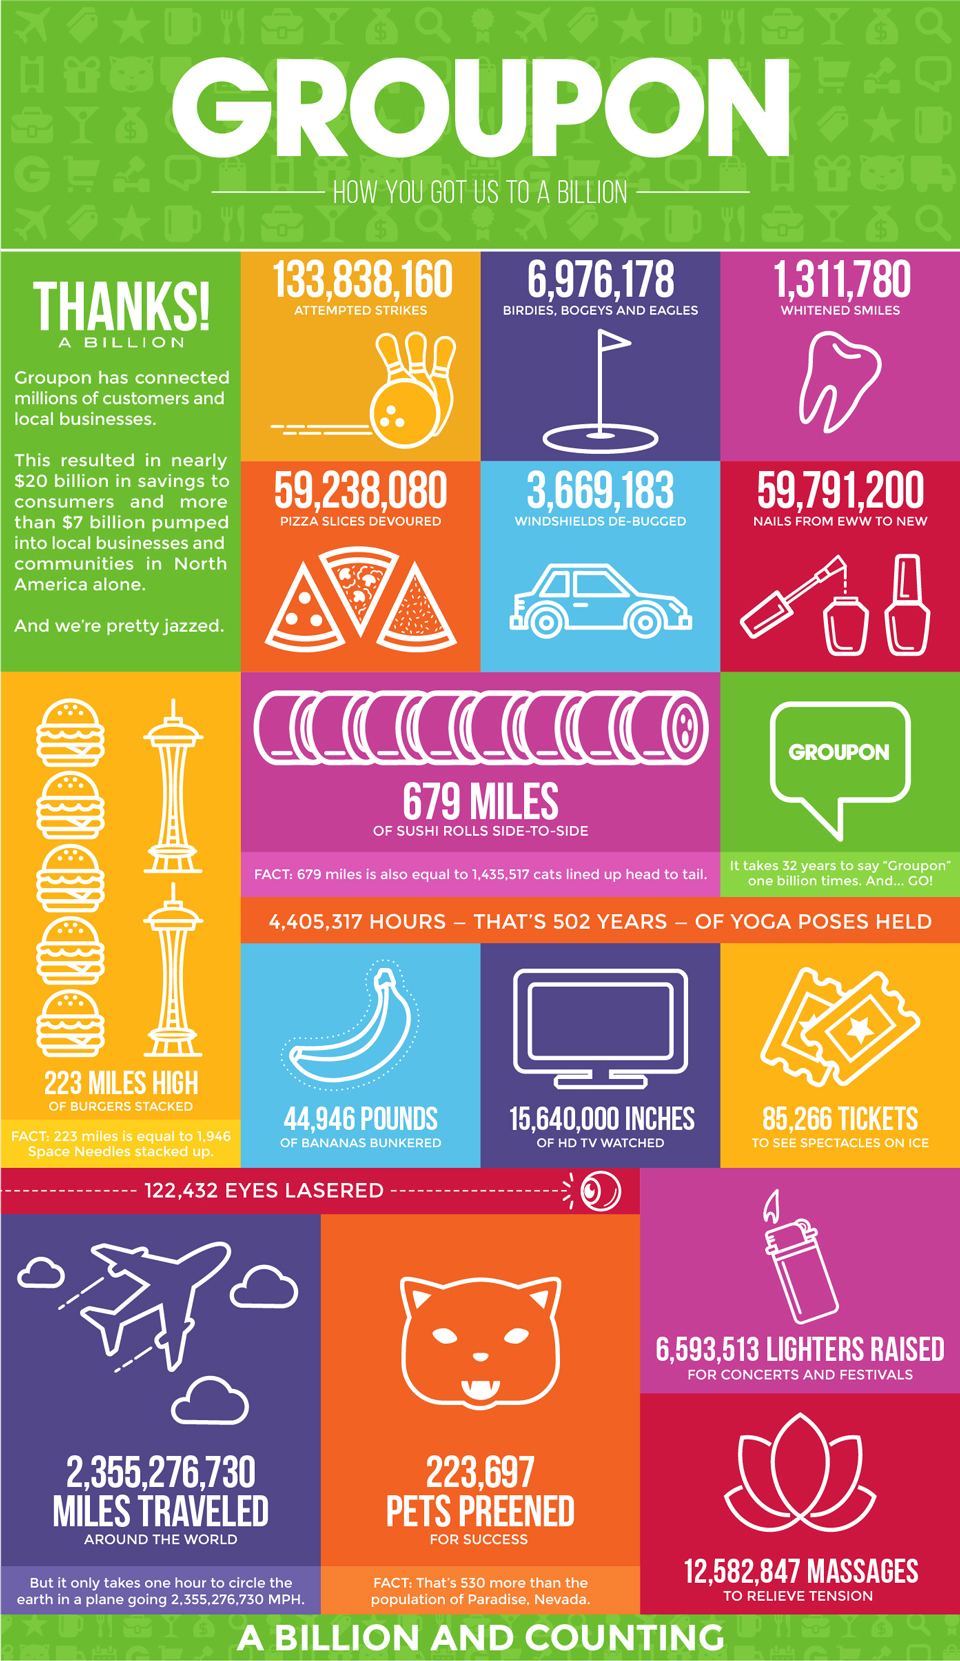 Groupon Infographic